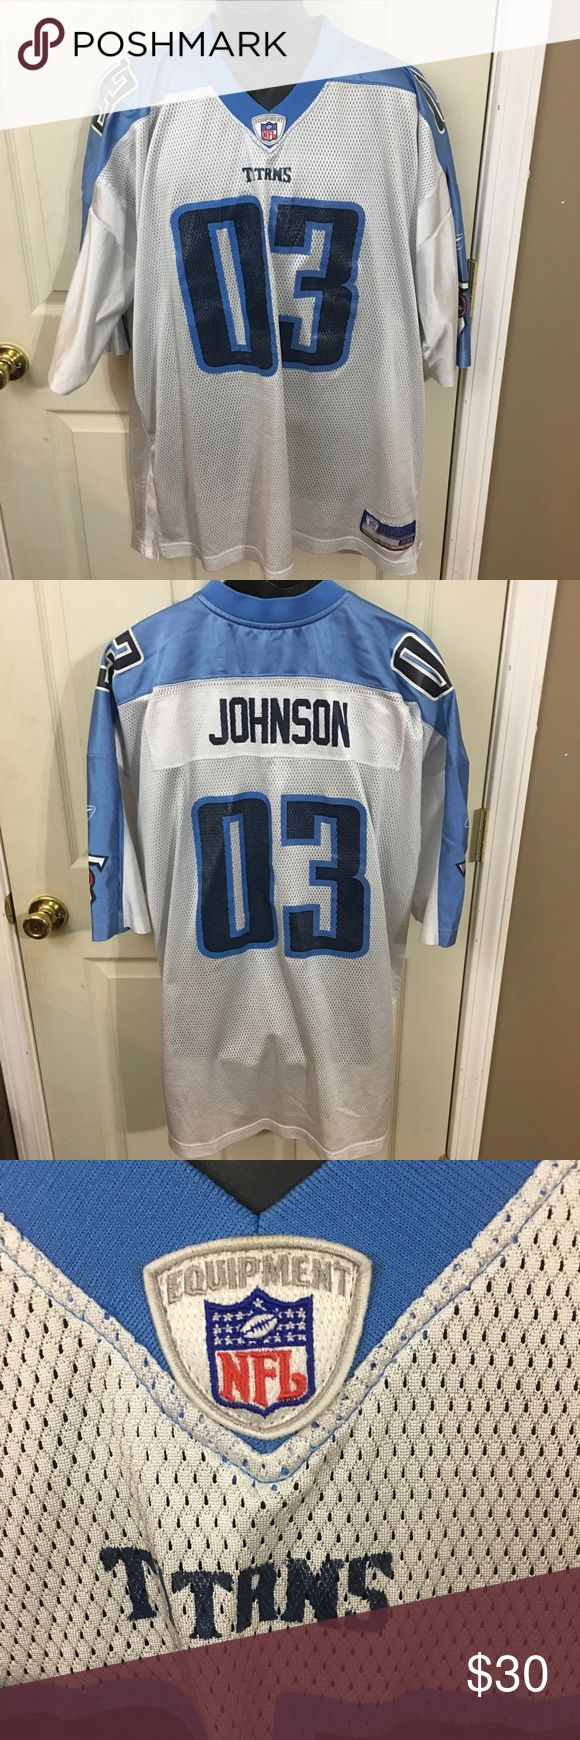 TN Titans Chris Johnson Football Jersey Size 3XL This is a men's TN Titans NFL Equipment Jersey Size 3XL. This jersey is in excellent gently used condition and has just some wash ware on the numbers. Please take a look at all photos for condition and if you have any questions feel free to ask. NFL Shirts